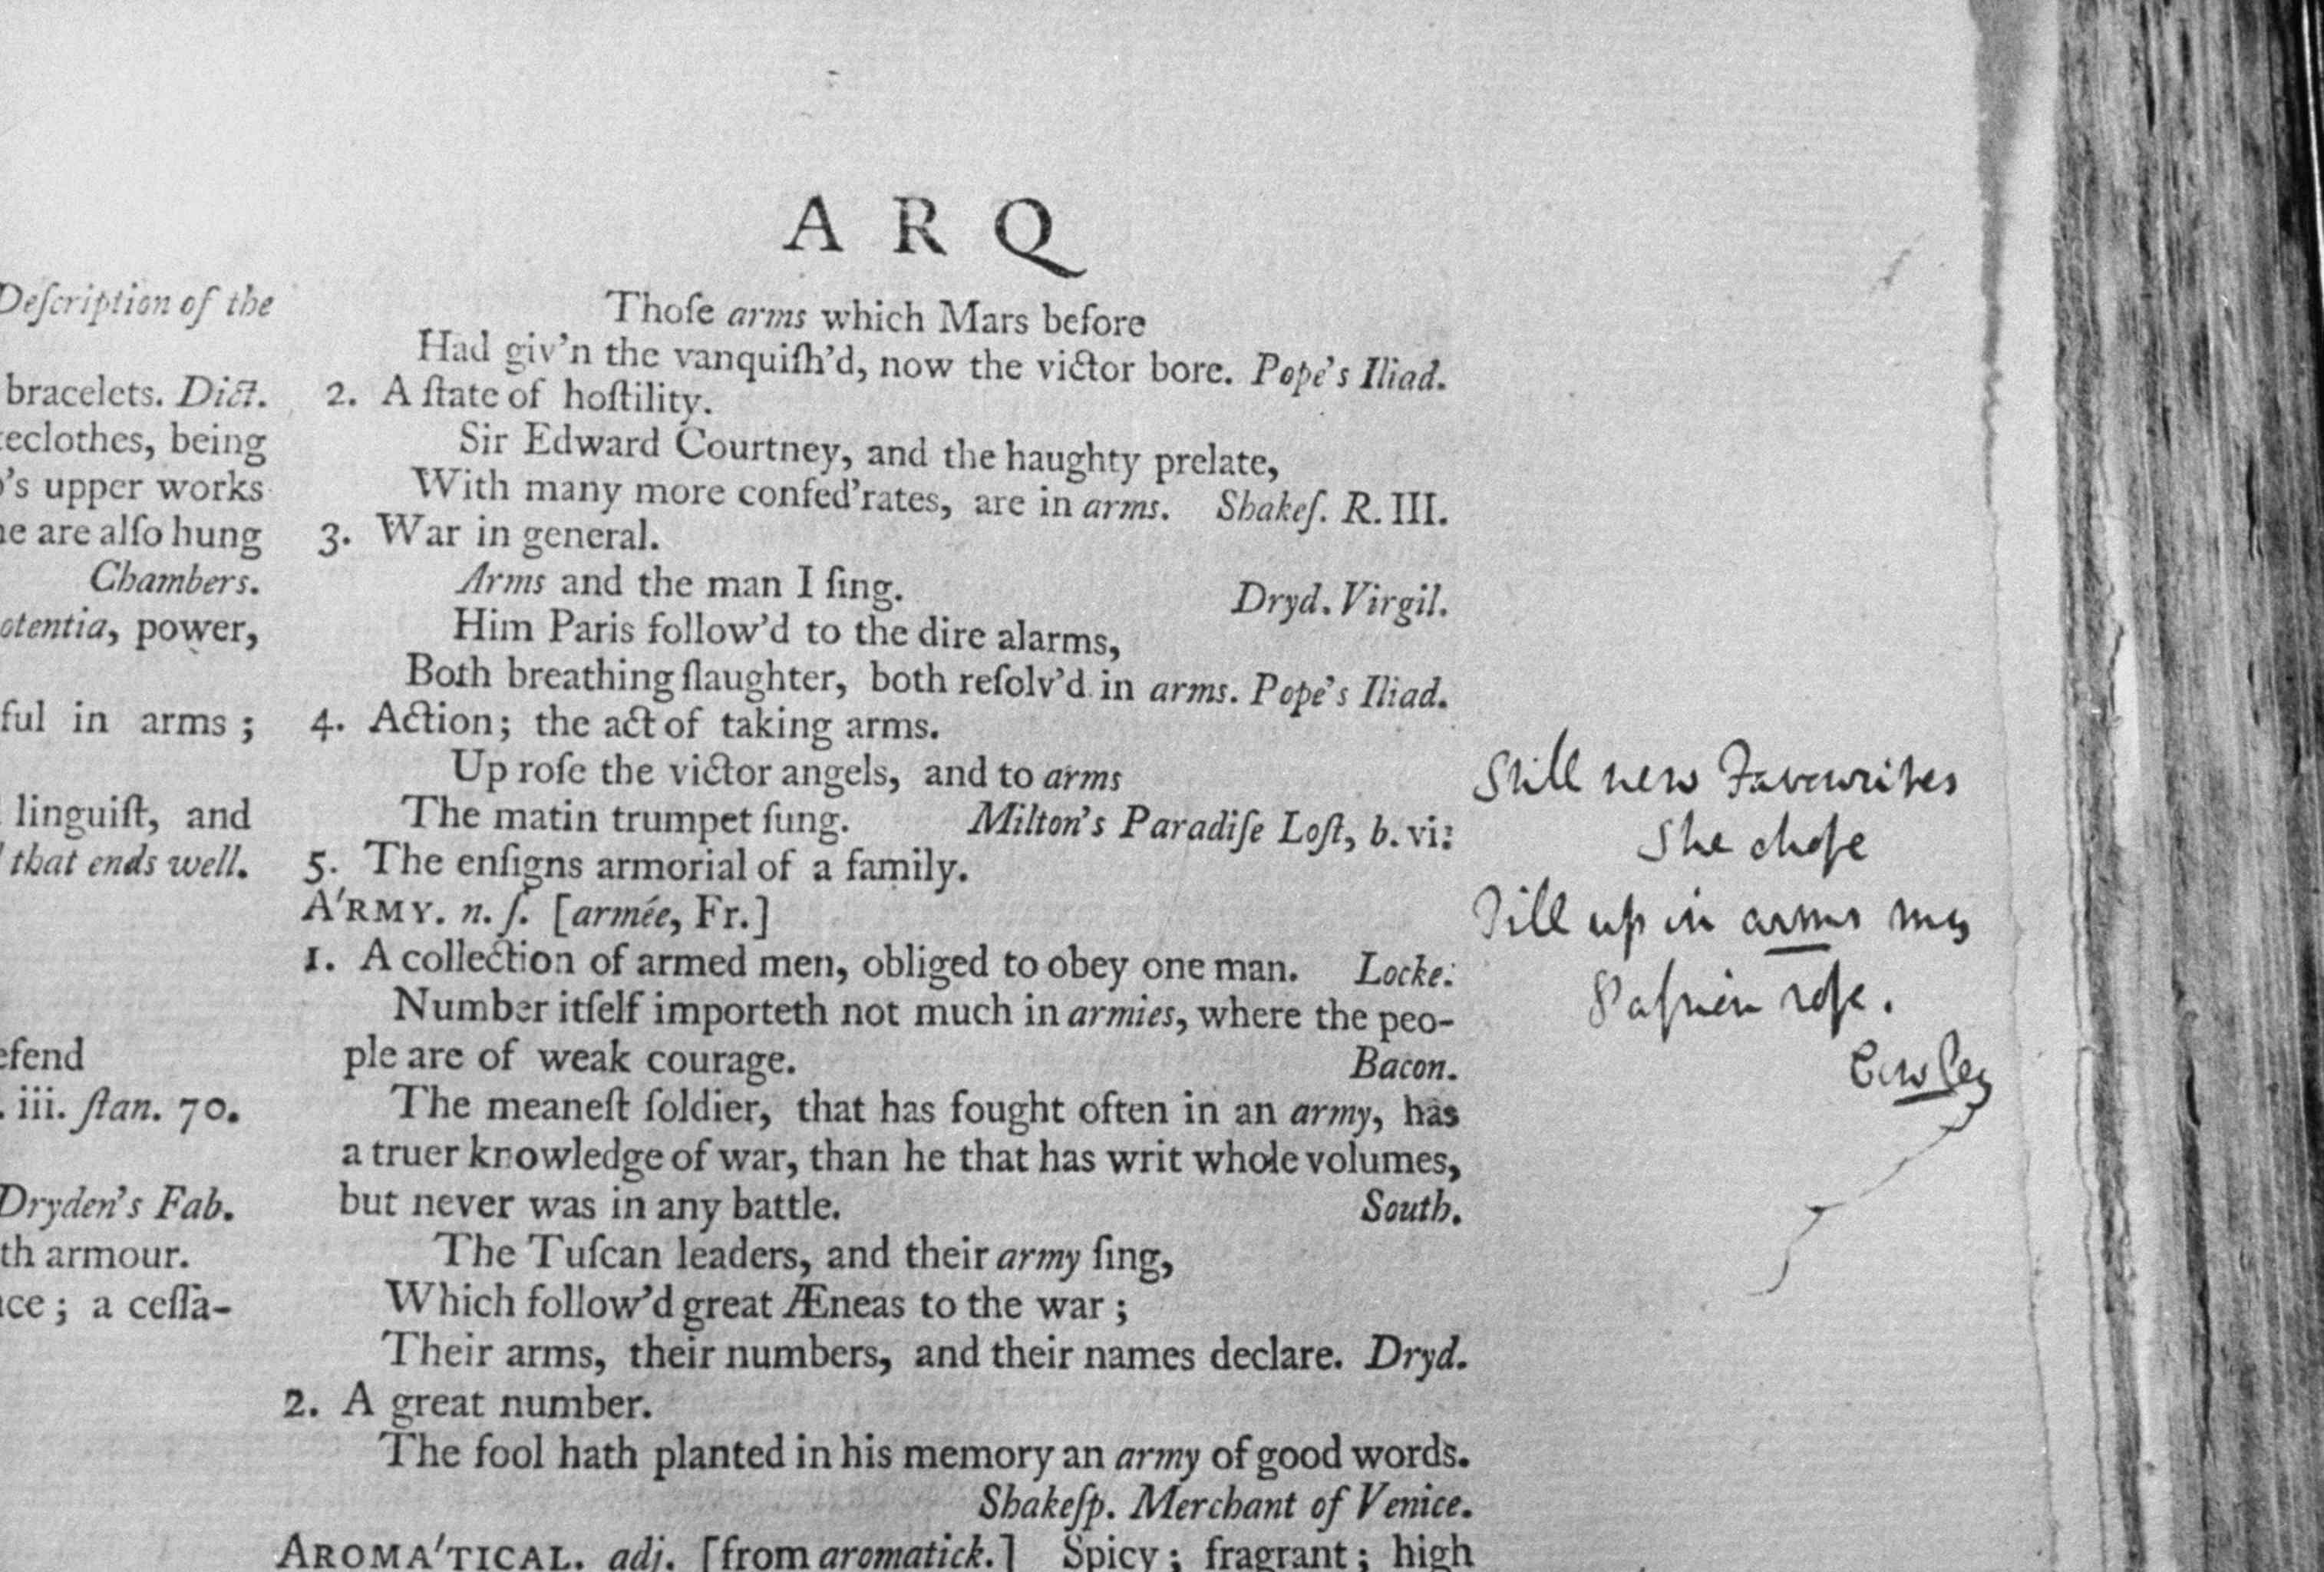 Closeup of pages from early editions of Samuel Johnson's Dictionary of English Language including handwritten notes on margins.